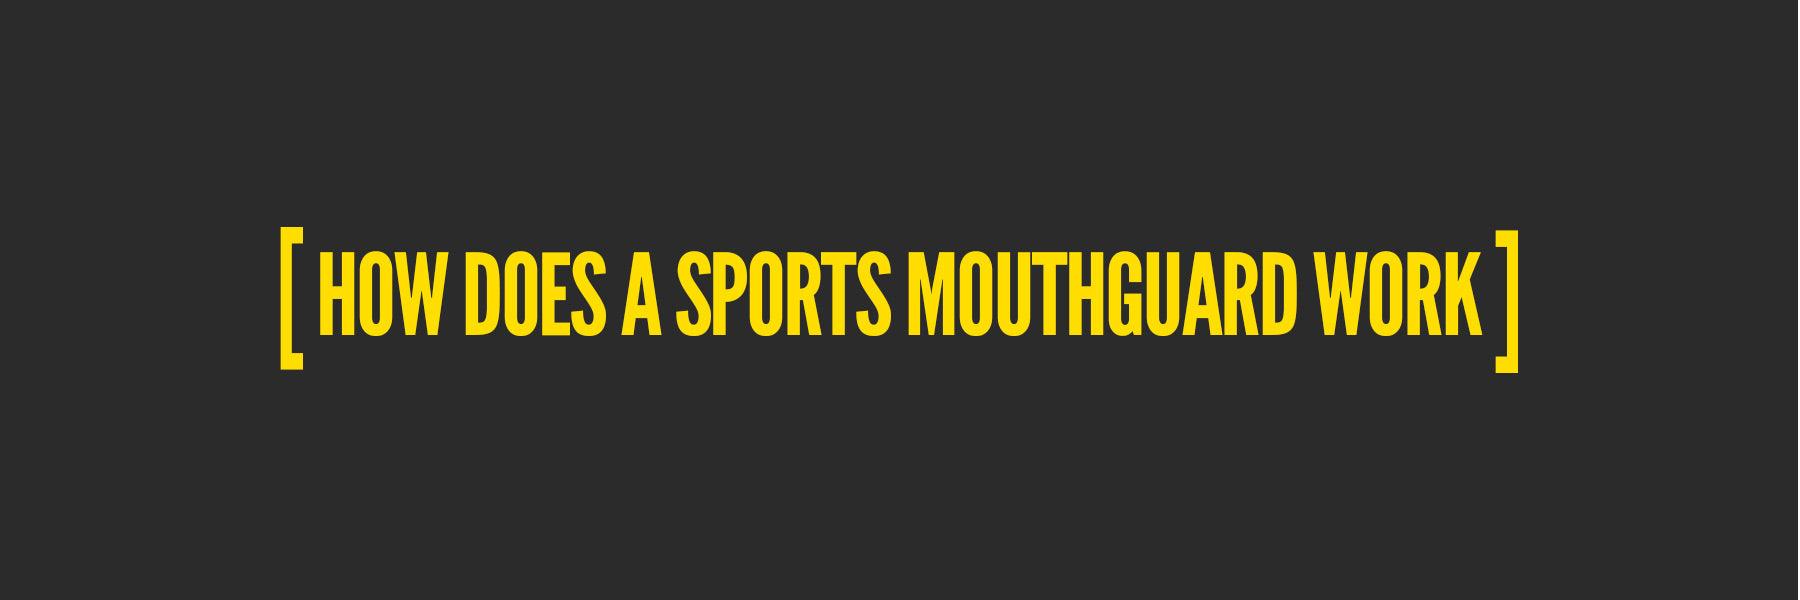 Mouth Guards in Sports: How does a sports mouthguard work